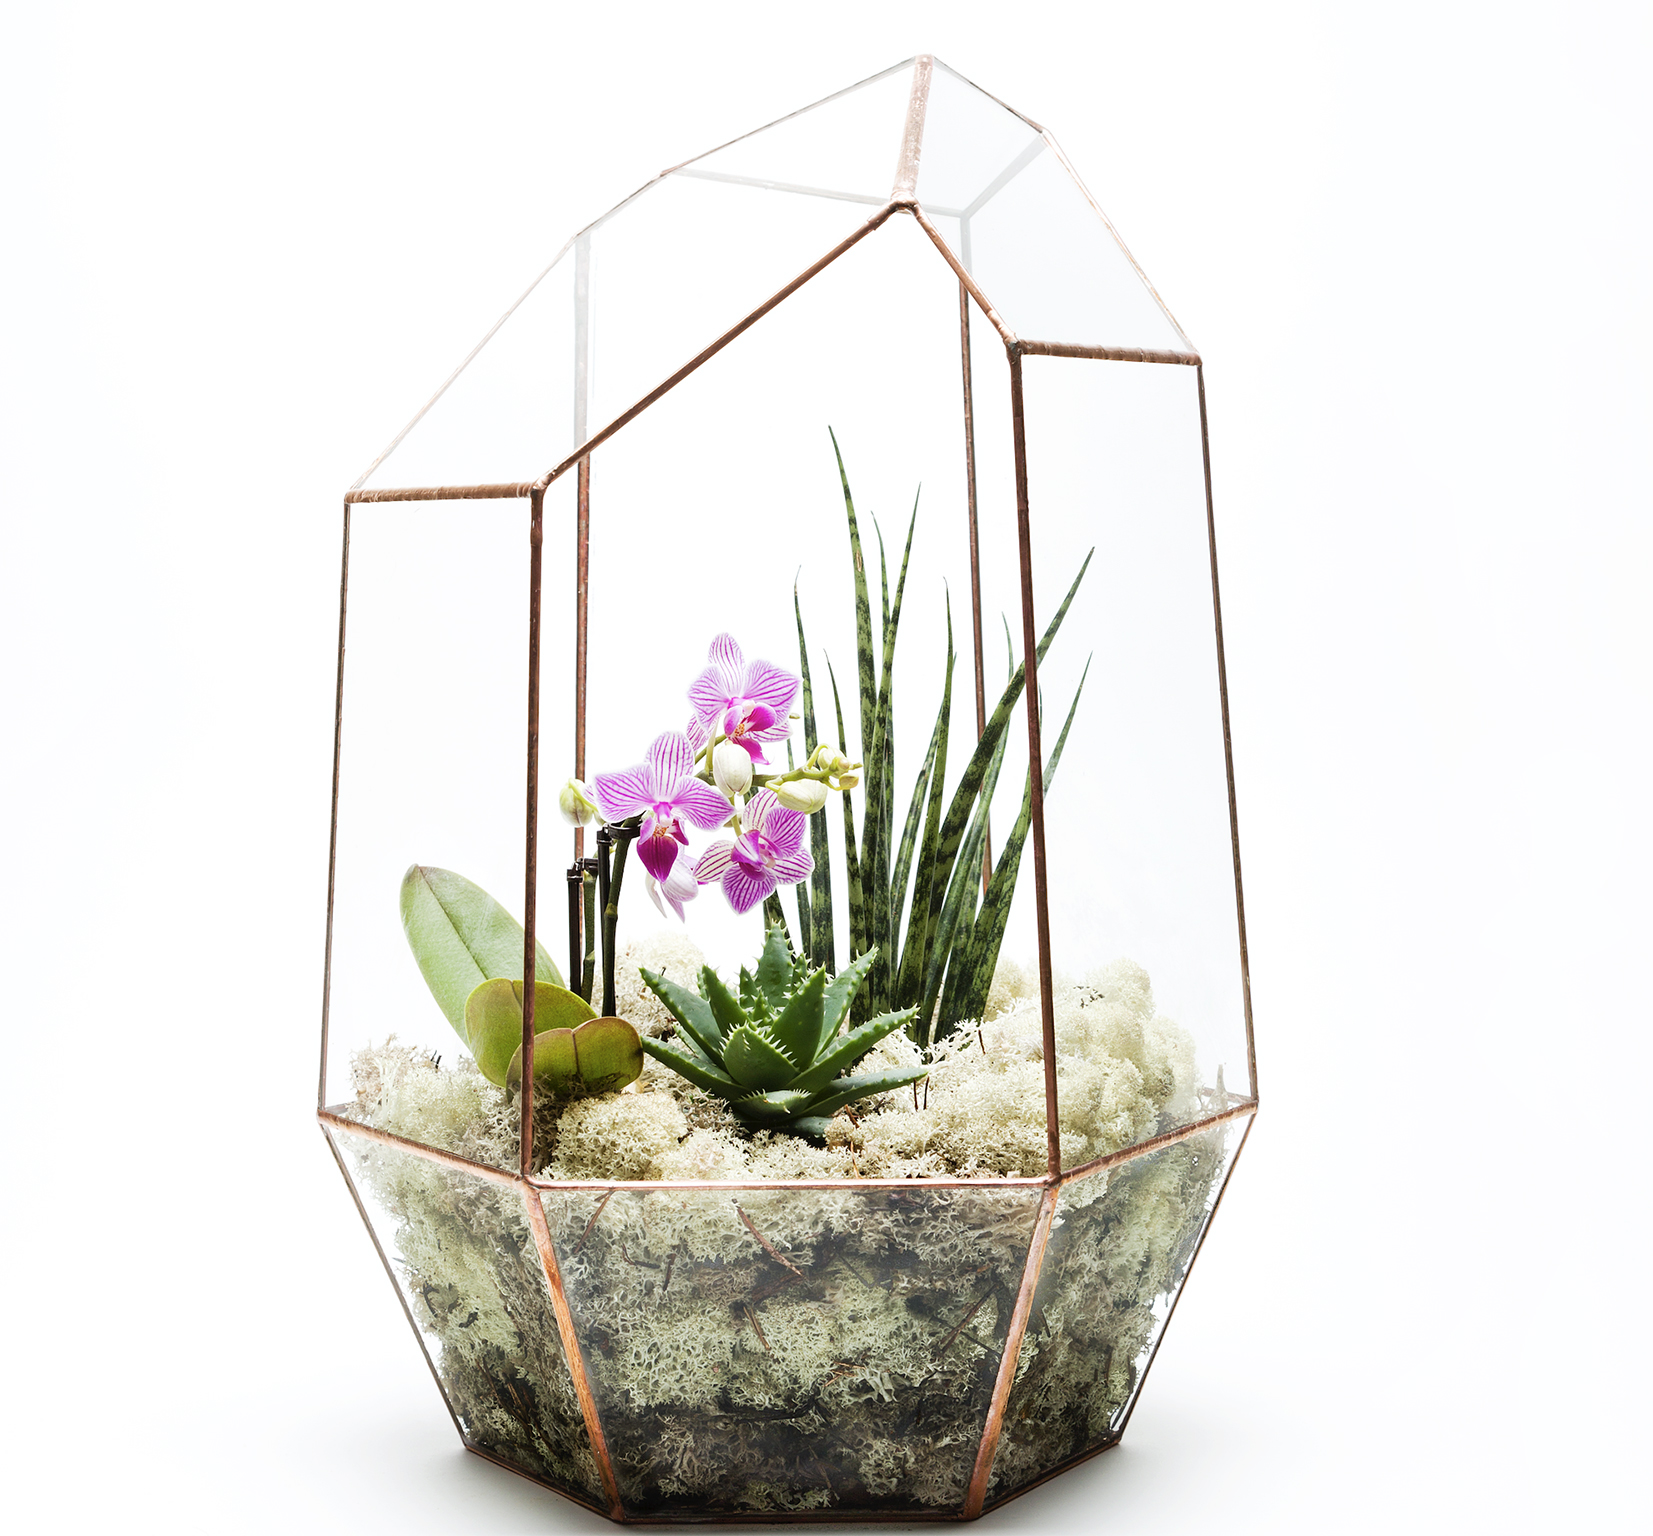 Terrarium with orchid from The Urban Botanist